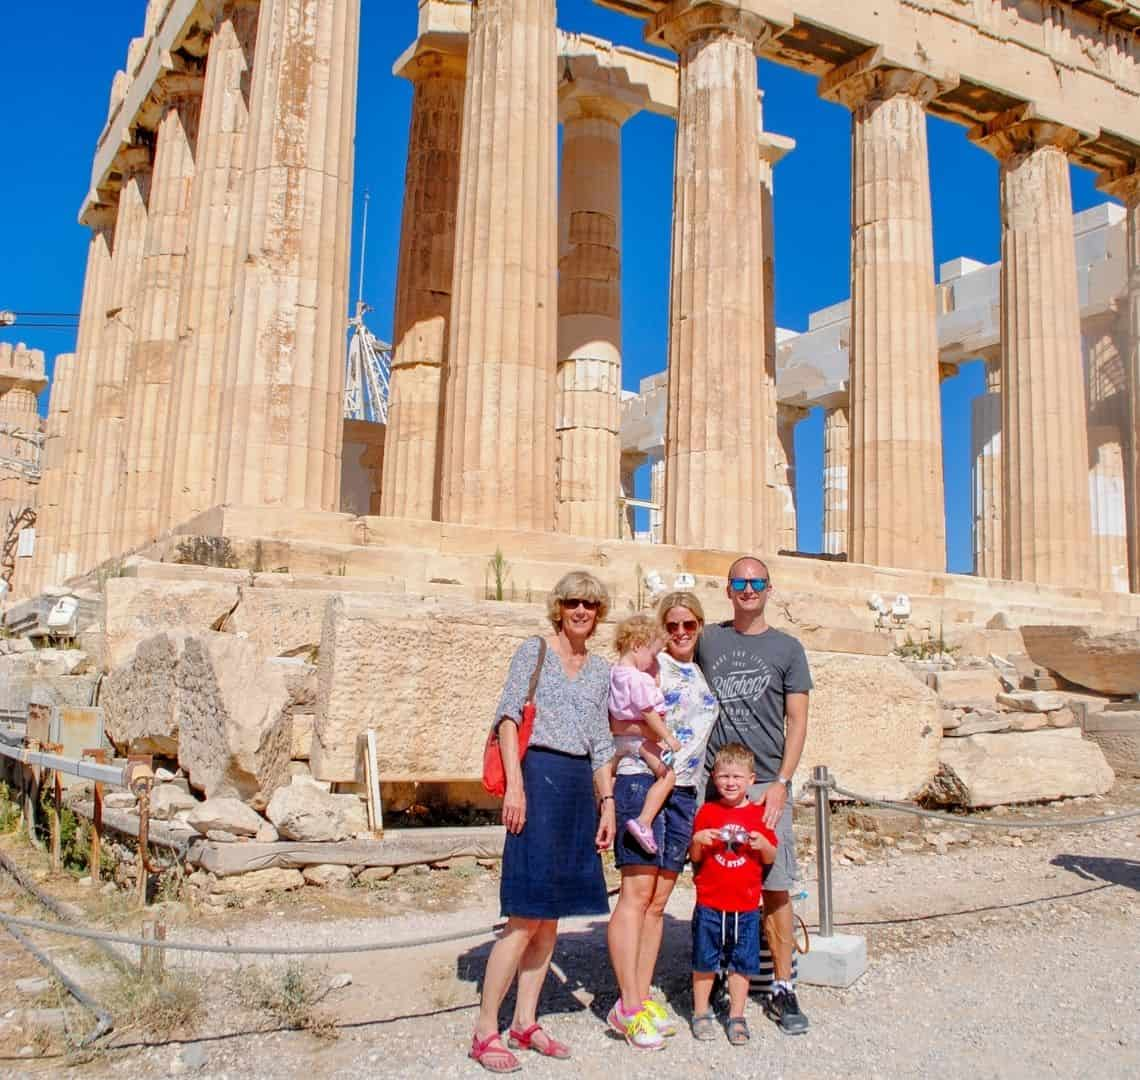 All of us in front of the Parthenon in Athens. Granny Wanderlust is in a flowery top and a blue skirt, I am wearing a white flowery top and blue shorts, carrying Thing 2 in a pink t-shirt. Next t one is Mr Wanderlust in a grey t-shirt and grey shots. Thing 1 is in front of us wearing a bright red t-shirt and blue shorts. The sky is bright blue and can be seen through the pillars of the Parthenon.